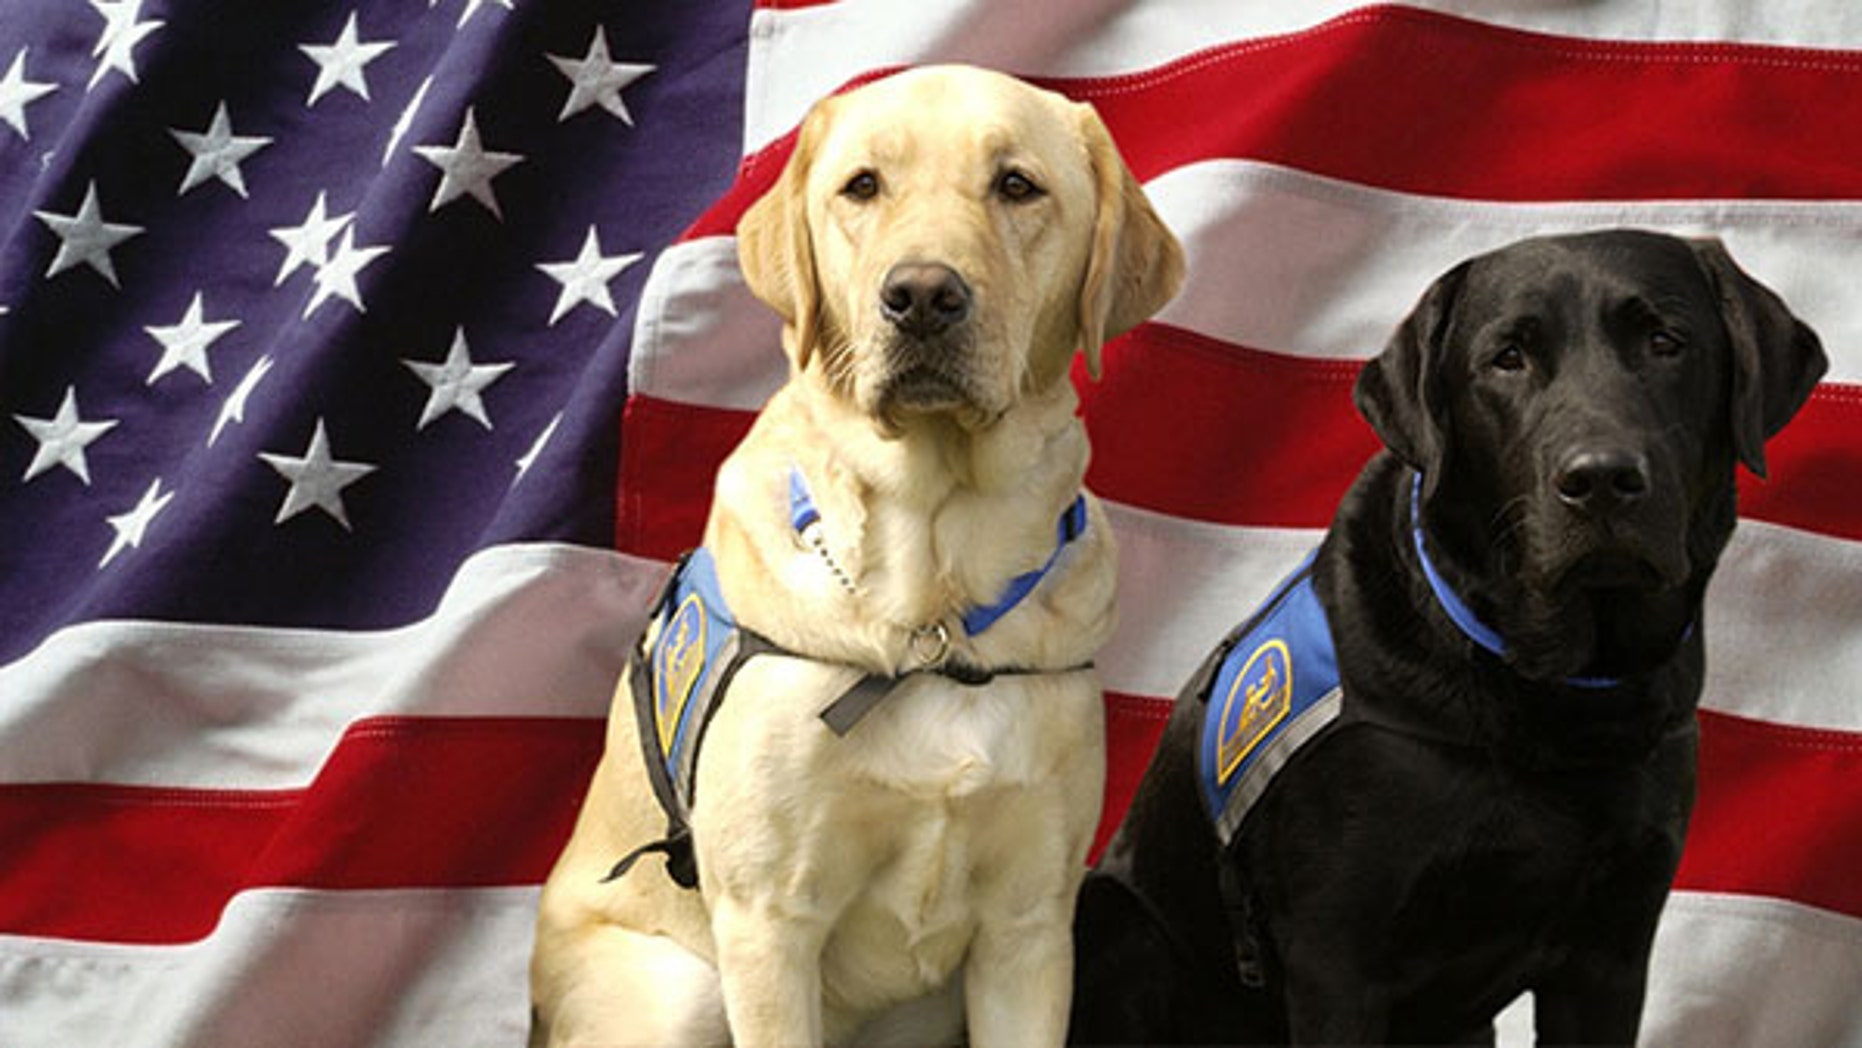 These patriotic pups will be ready for the Fourth. Will yours be, too?